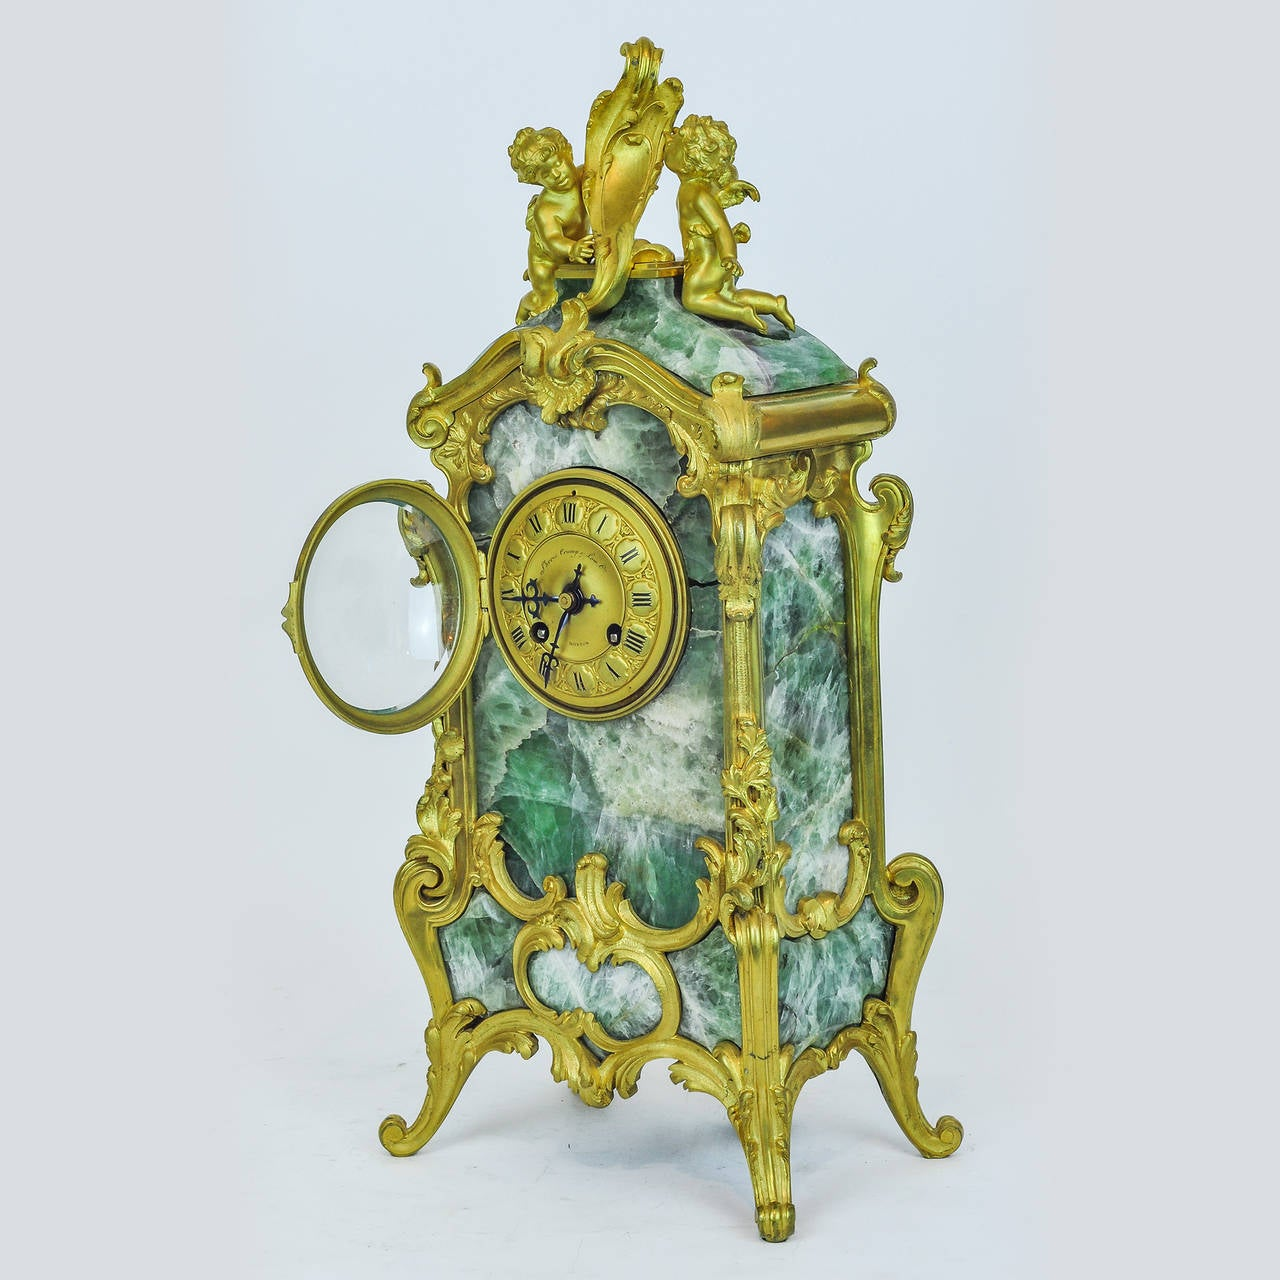 Unusual Clocks Unusual Louis Xv Style Marble And Bronze Figural Mantel